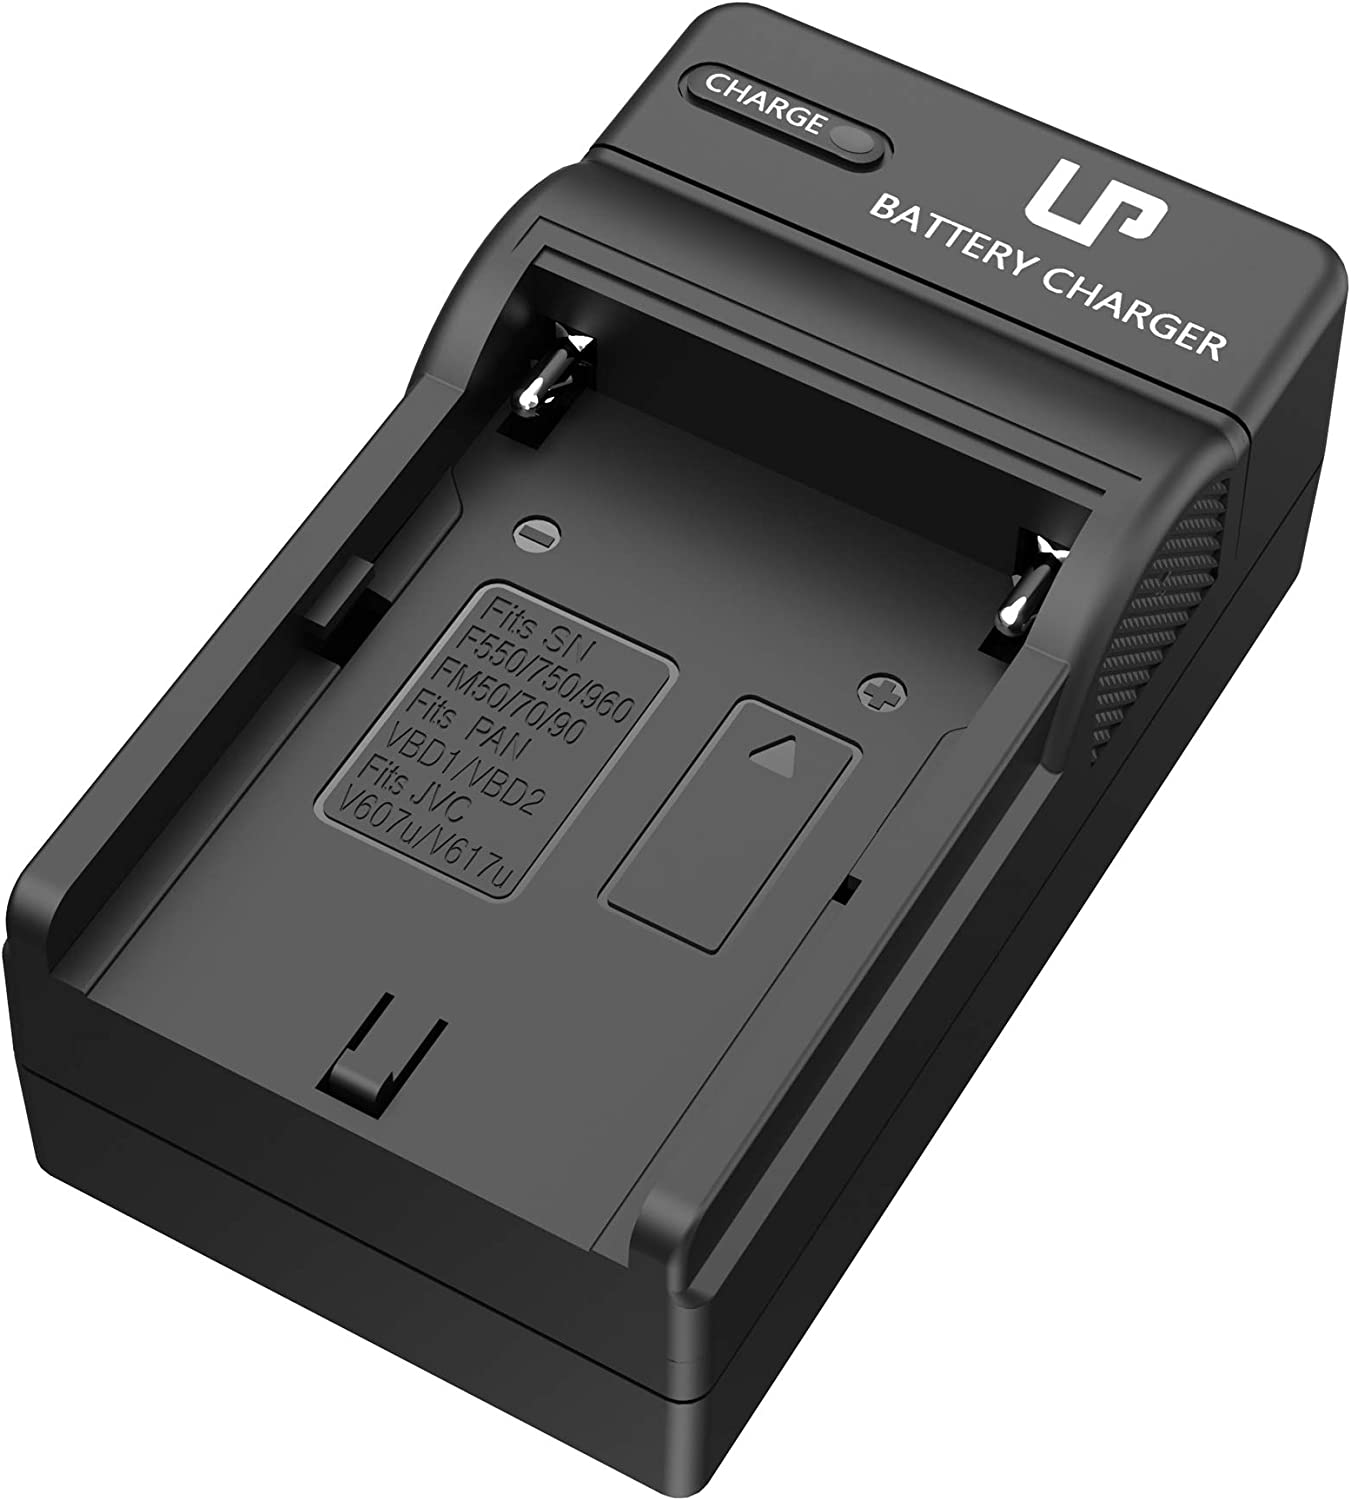 NP-F550 Battery Charger, LP Charger Compatible with Sony NP F970, F960, F770, F750, F570, F530, F330, CCD-SC55,TR516,TR716, TR818, TR910, TR917, CN160, CN-216 LED Light, Feelworld Field Monitor & More